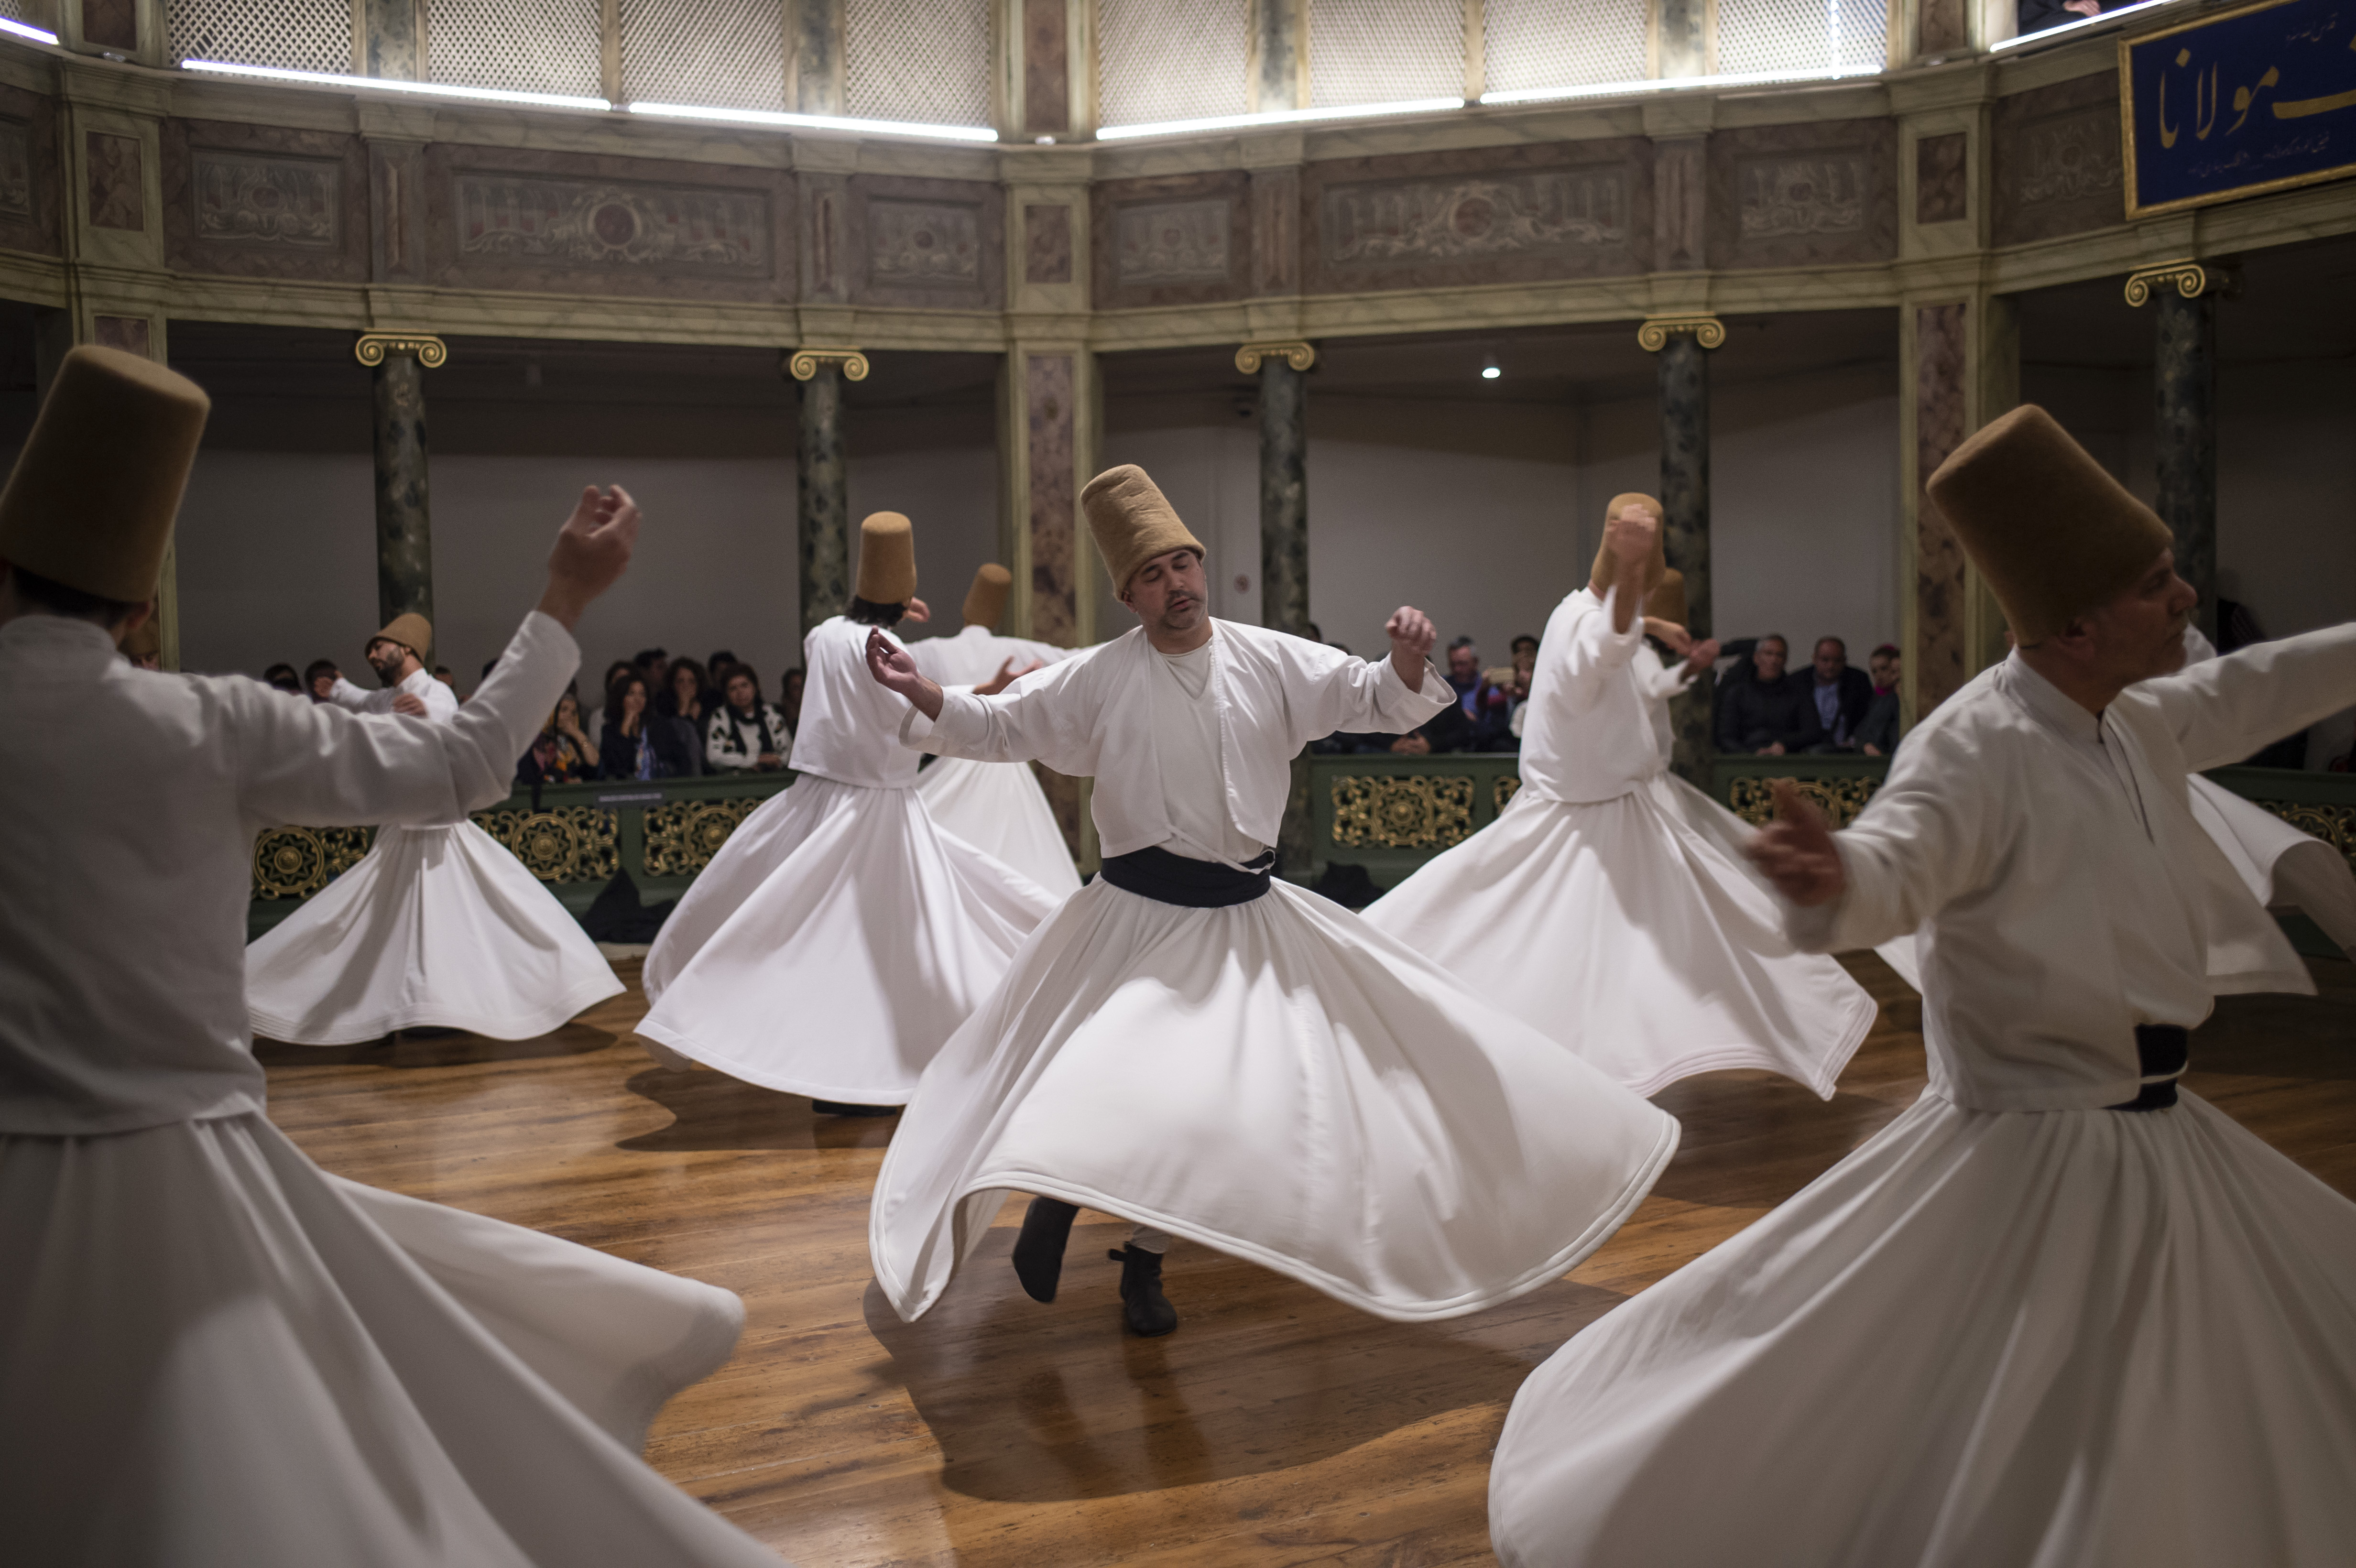 Here's what you should know before attending a whirling